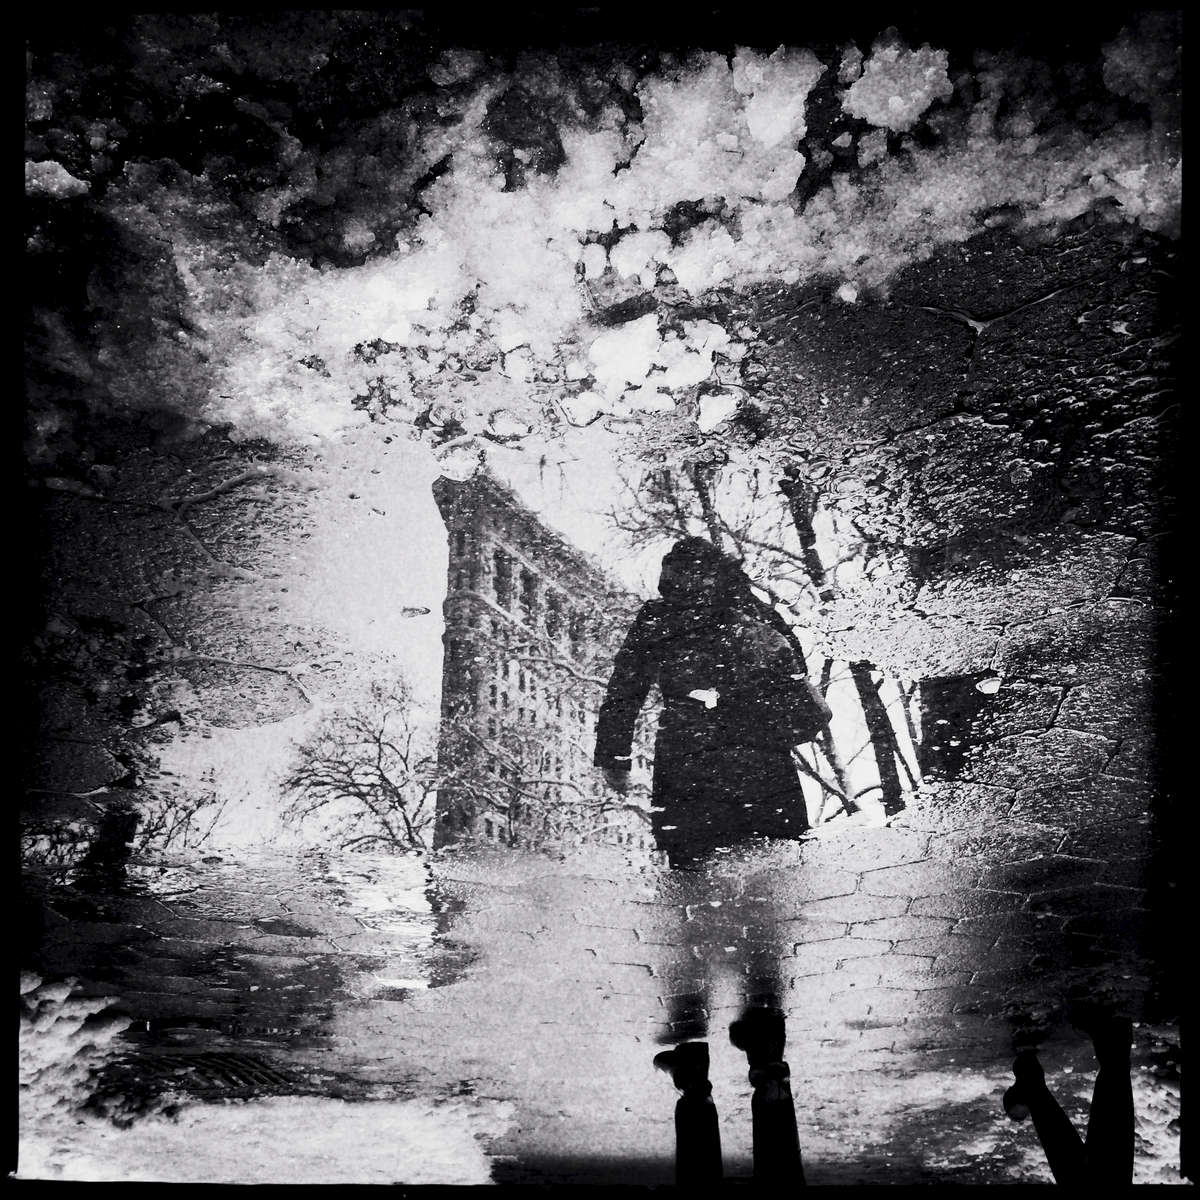 Snowy puddle reflection with a man and Flatiron building.